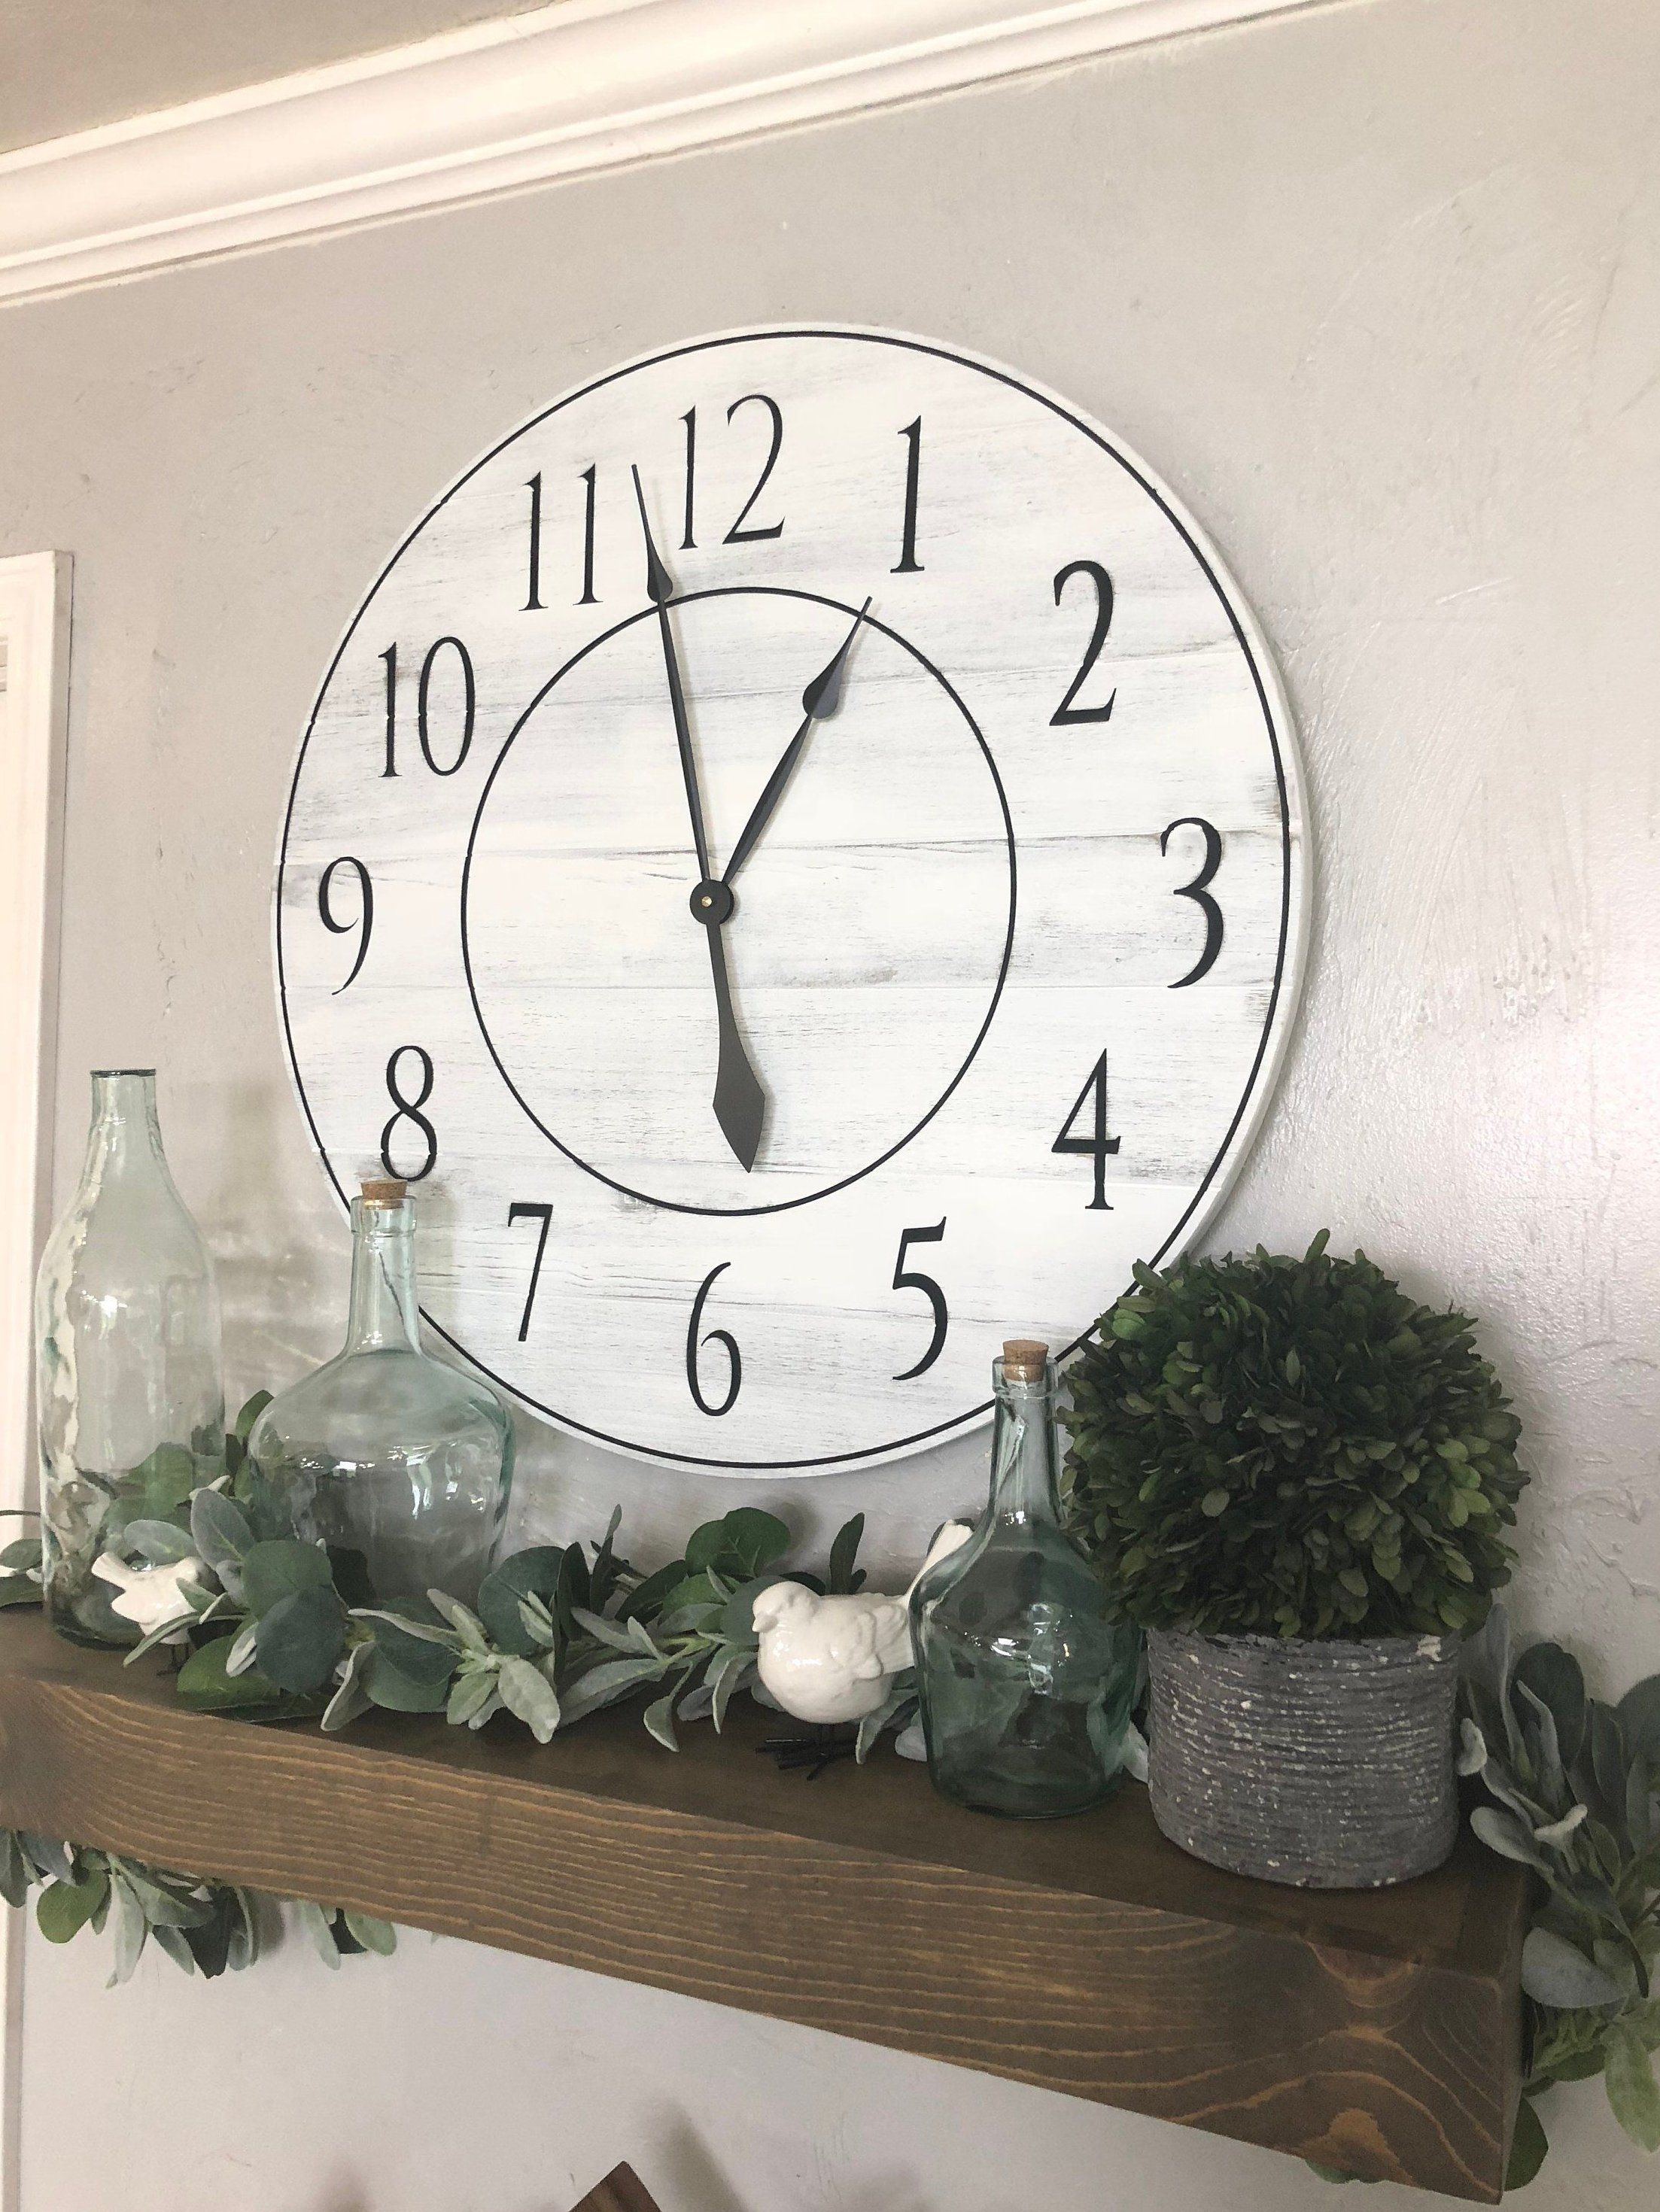 20 Fascinating Diy Wall Clock Design Ideas For Modern Home Decoration To Try Adorable 20 Fascinating In 2020 Wall Clocks Living Room Big Wall Clocks Clock Wall Decor